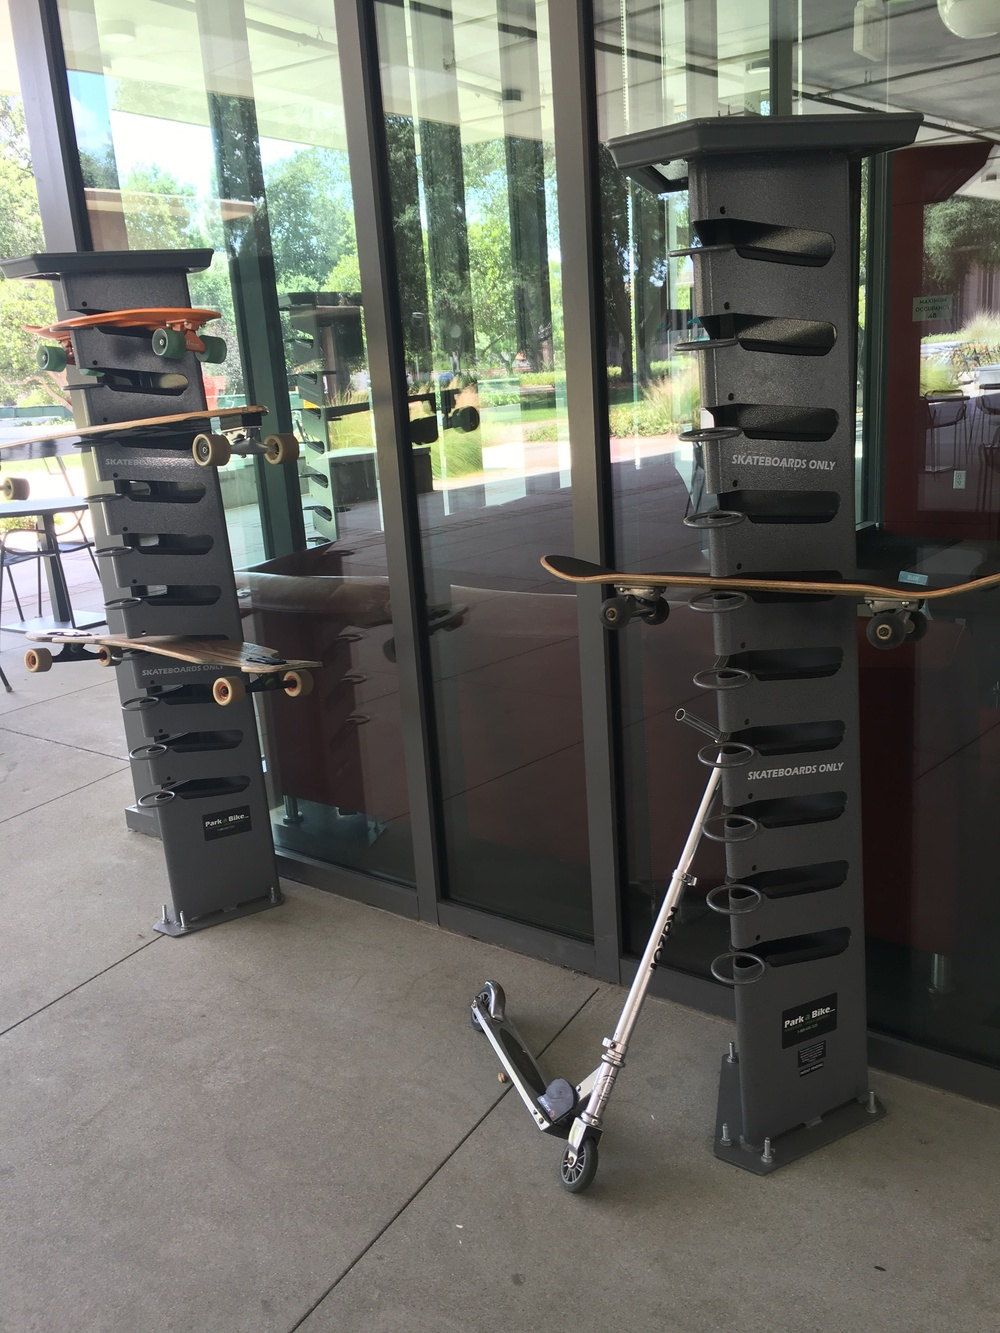 These skateboard stands can be found all over campus!